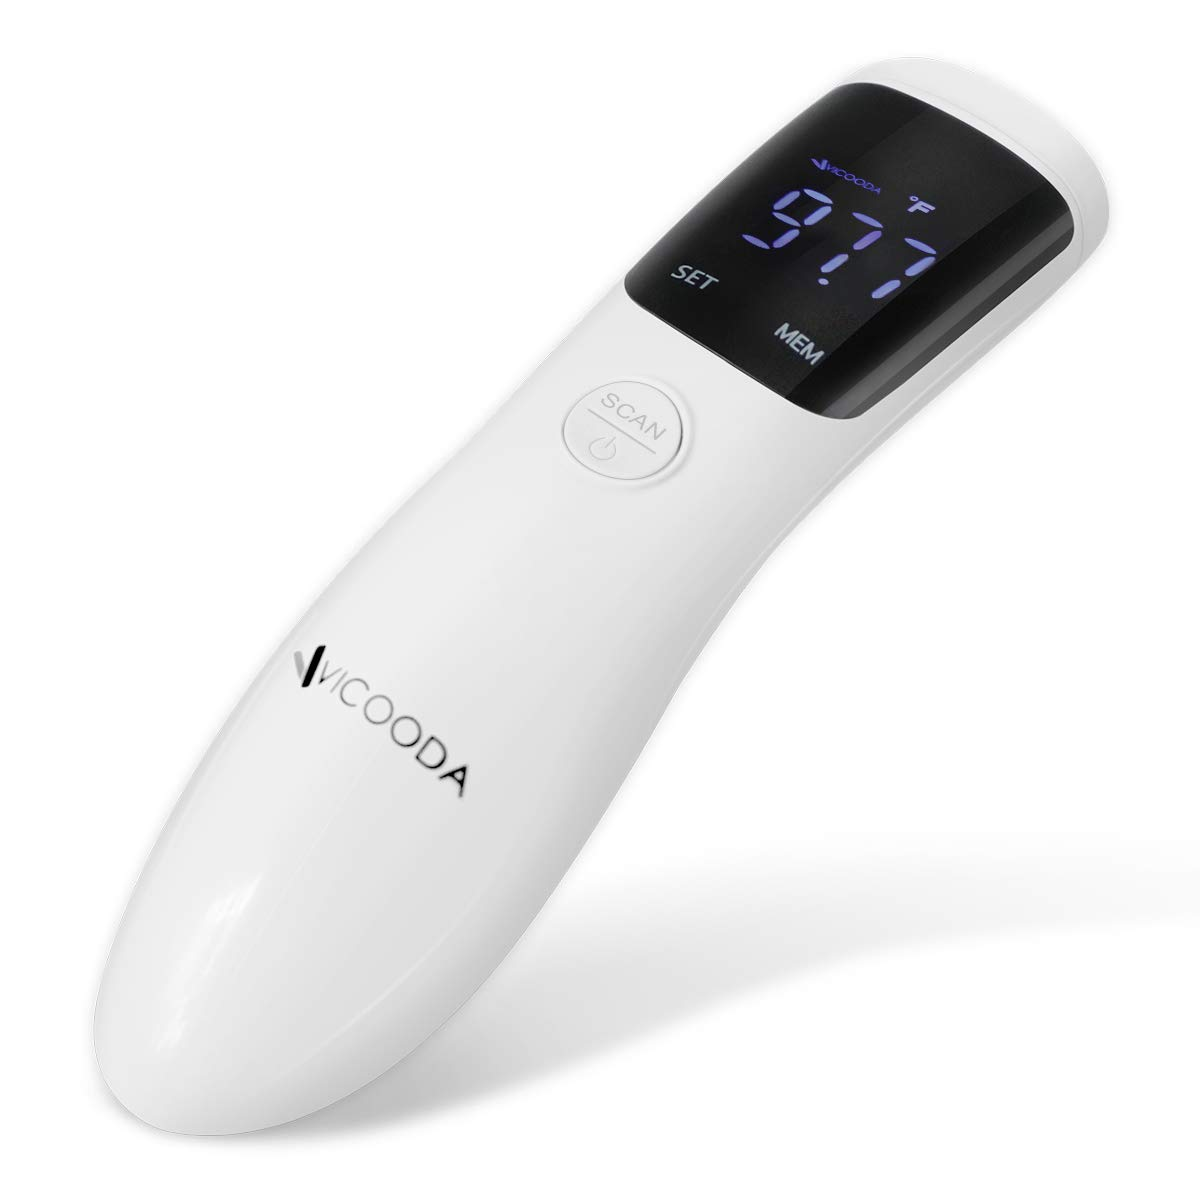 VICOODA Forehead Thermometer LCD Display, Intelligent Digital Medical Infrared Body Temporal Thermometer with Ear Function for Fever, for Kids, Children, Adults, Infants, Toddlers, FDA and CE Approved